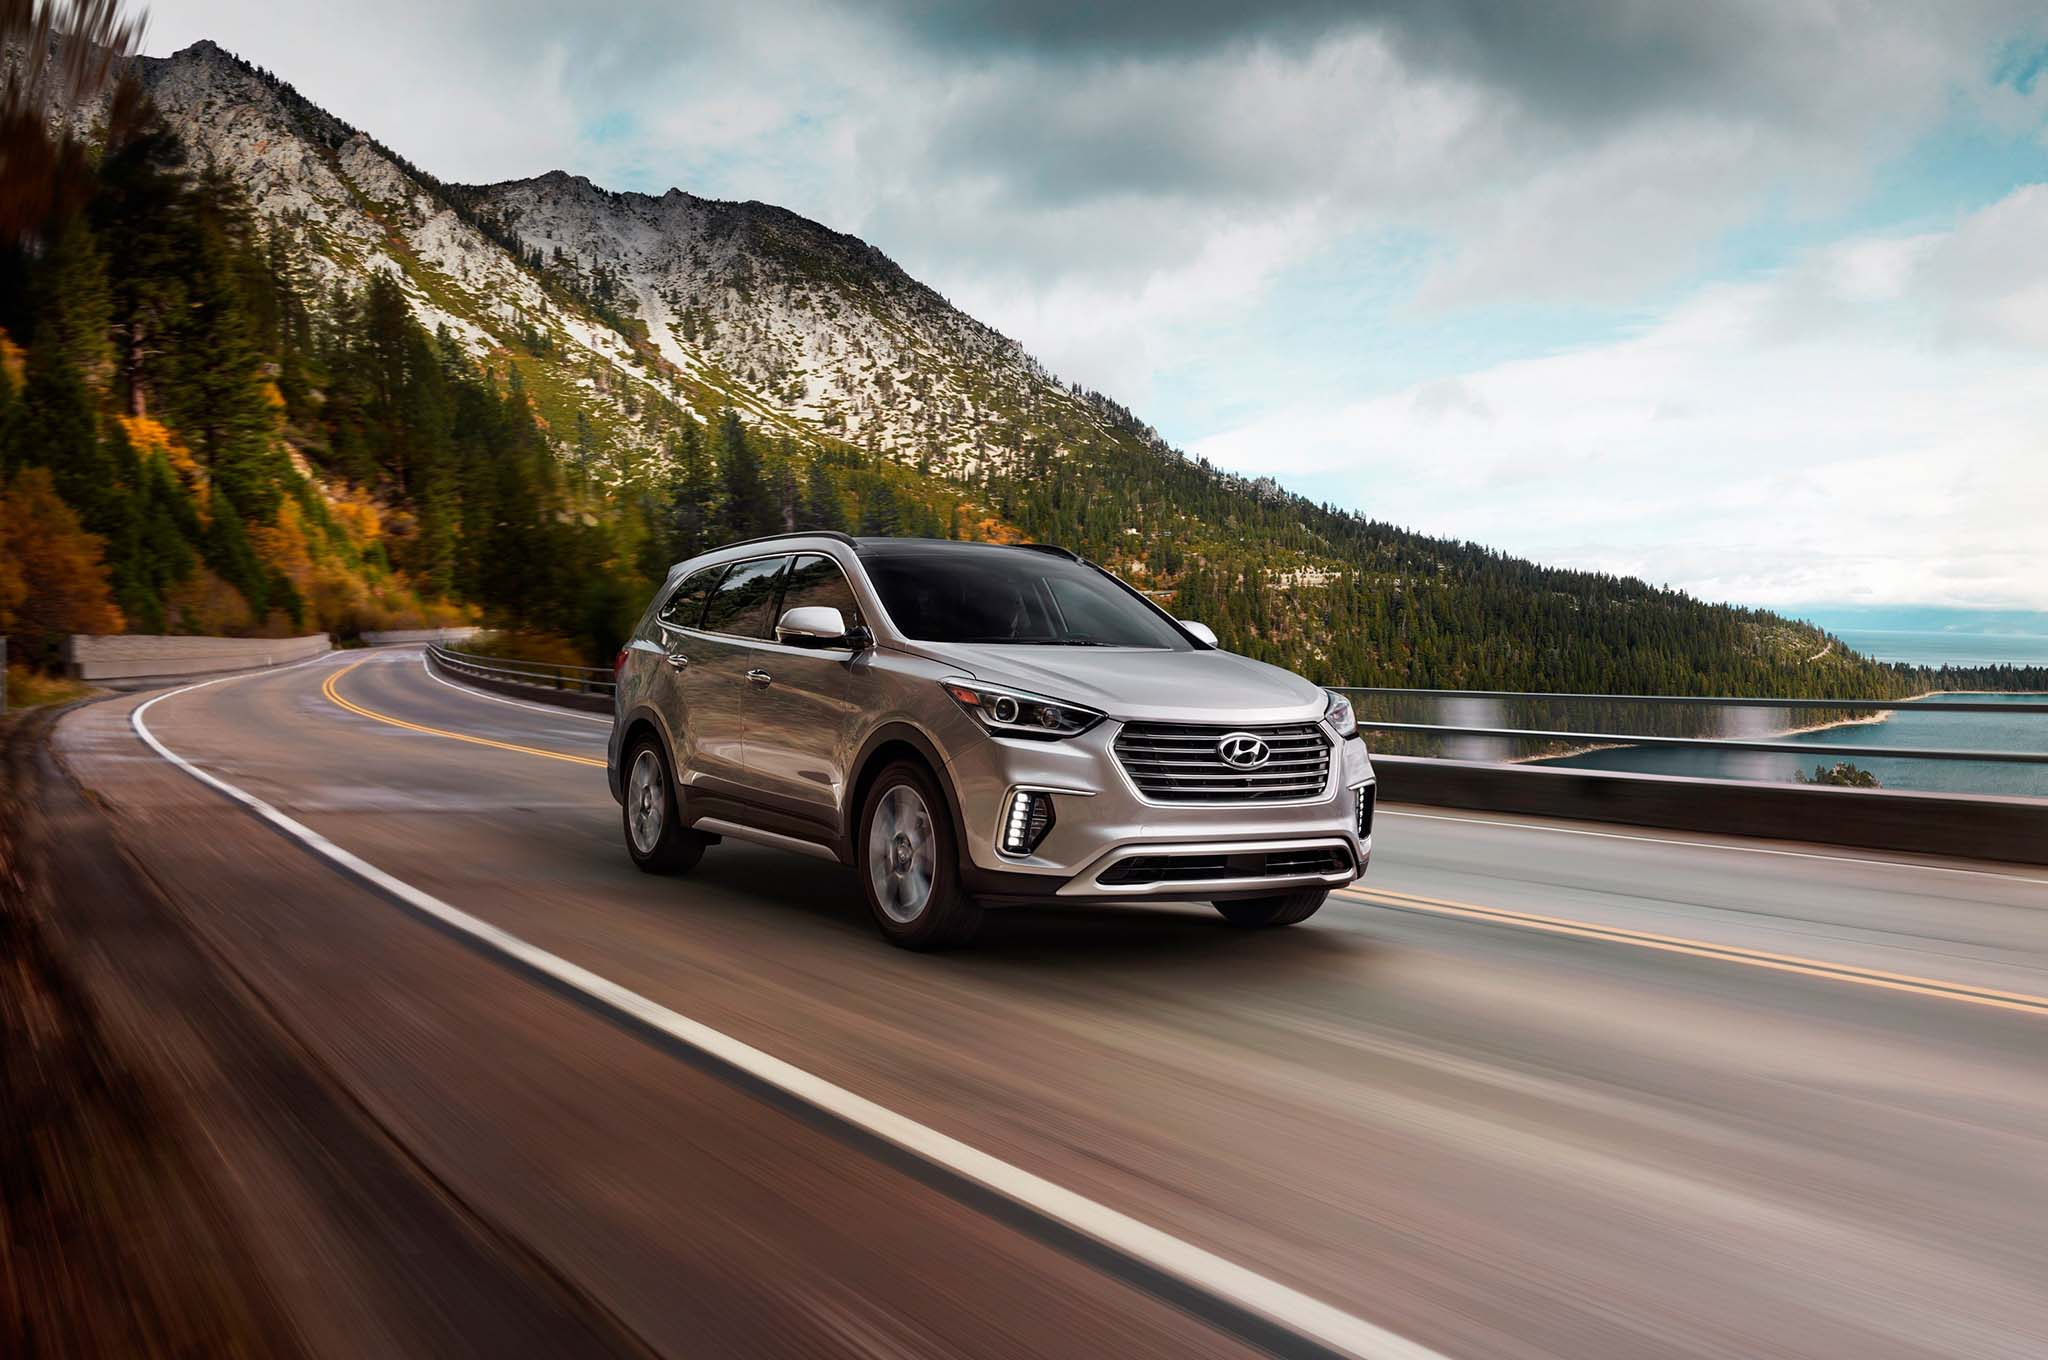 Hyundai To Offer 8 New Crossovers With 4 Fuel Choices By 2020